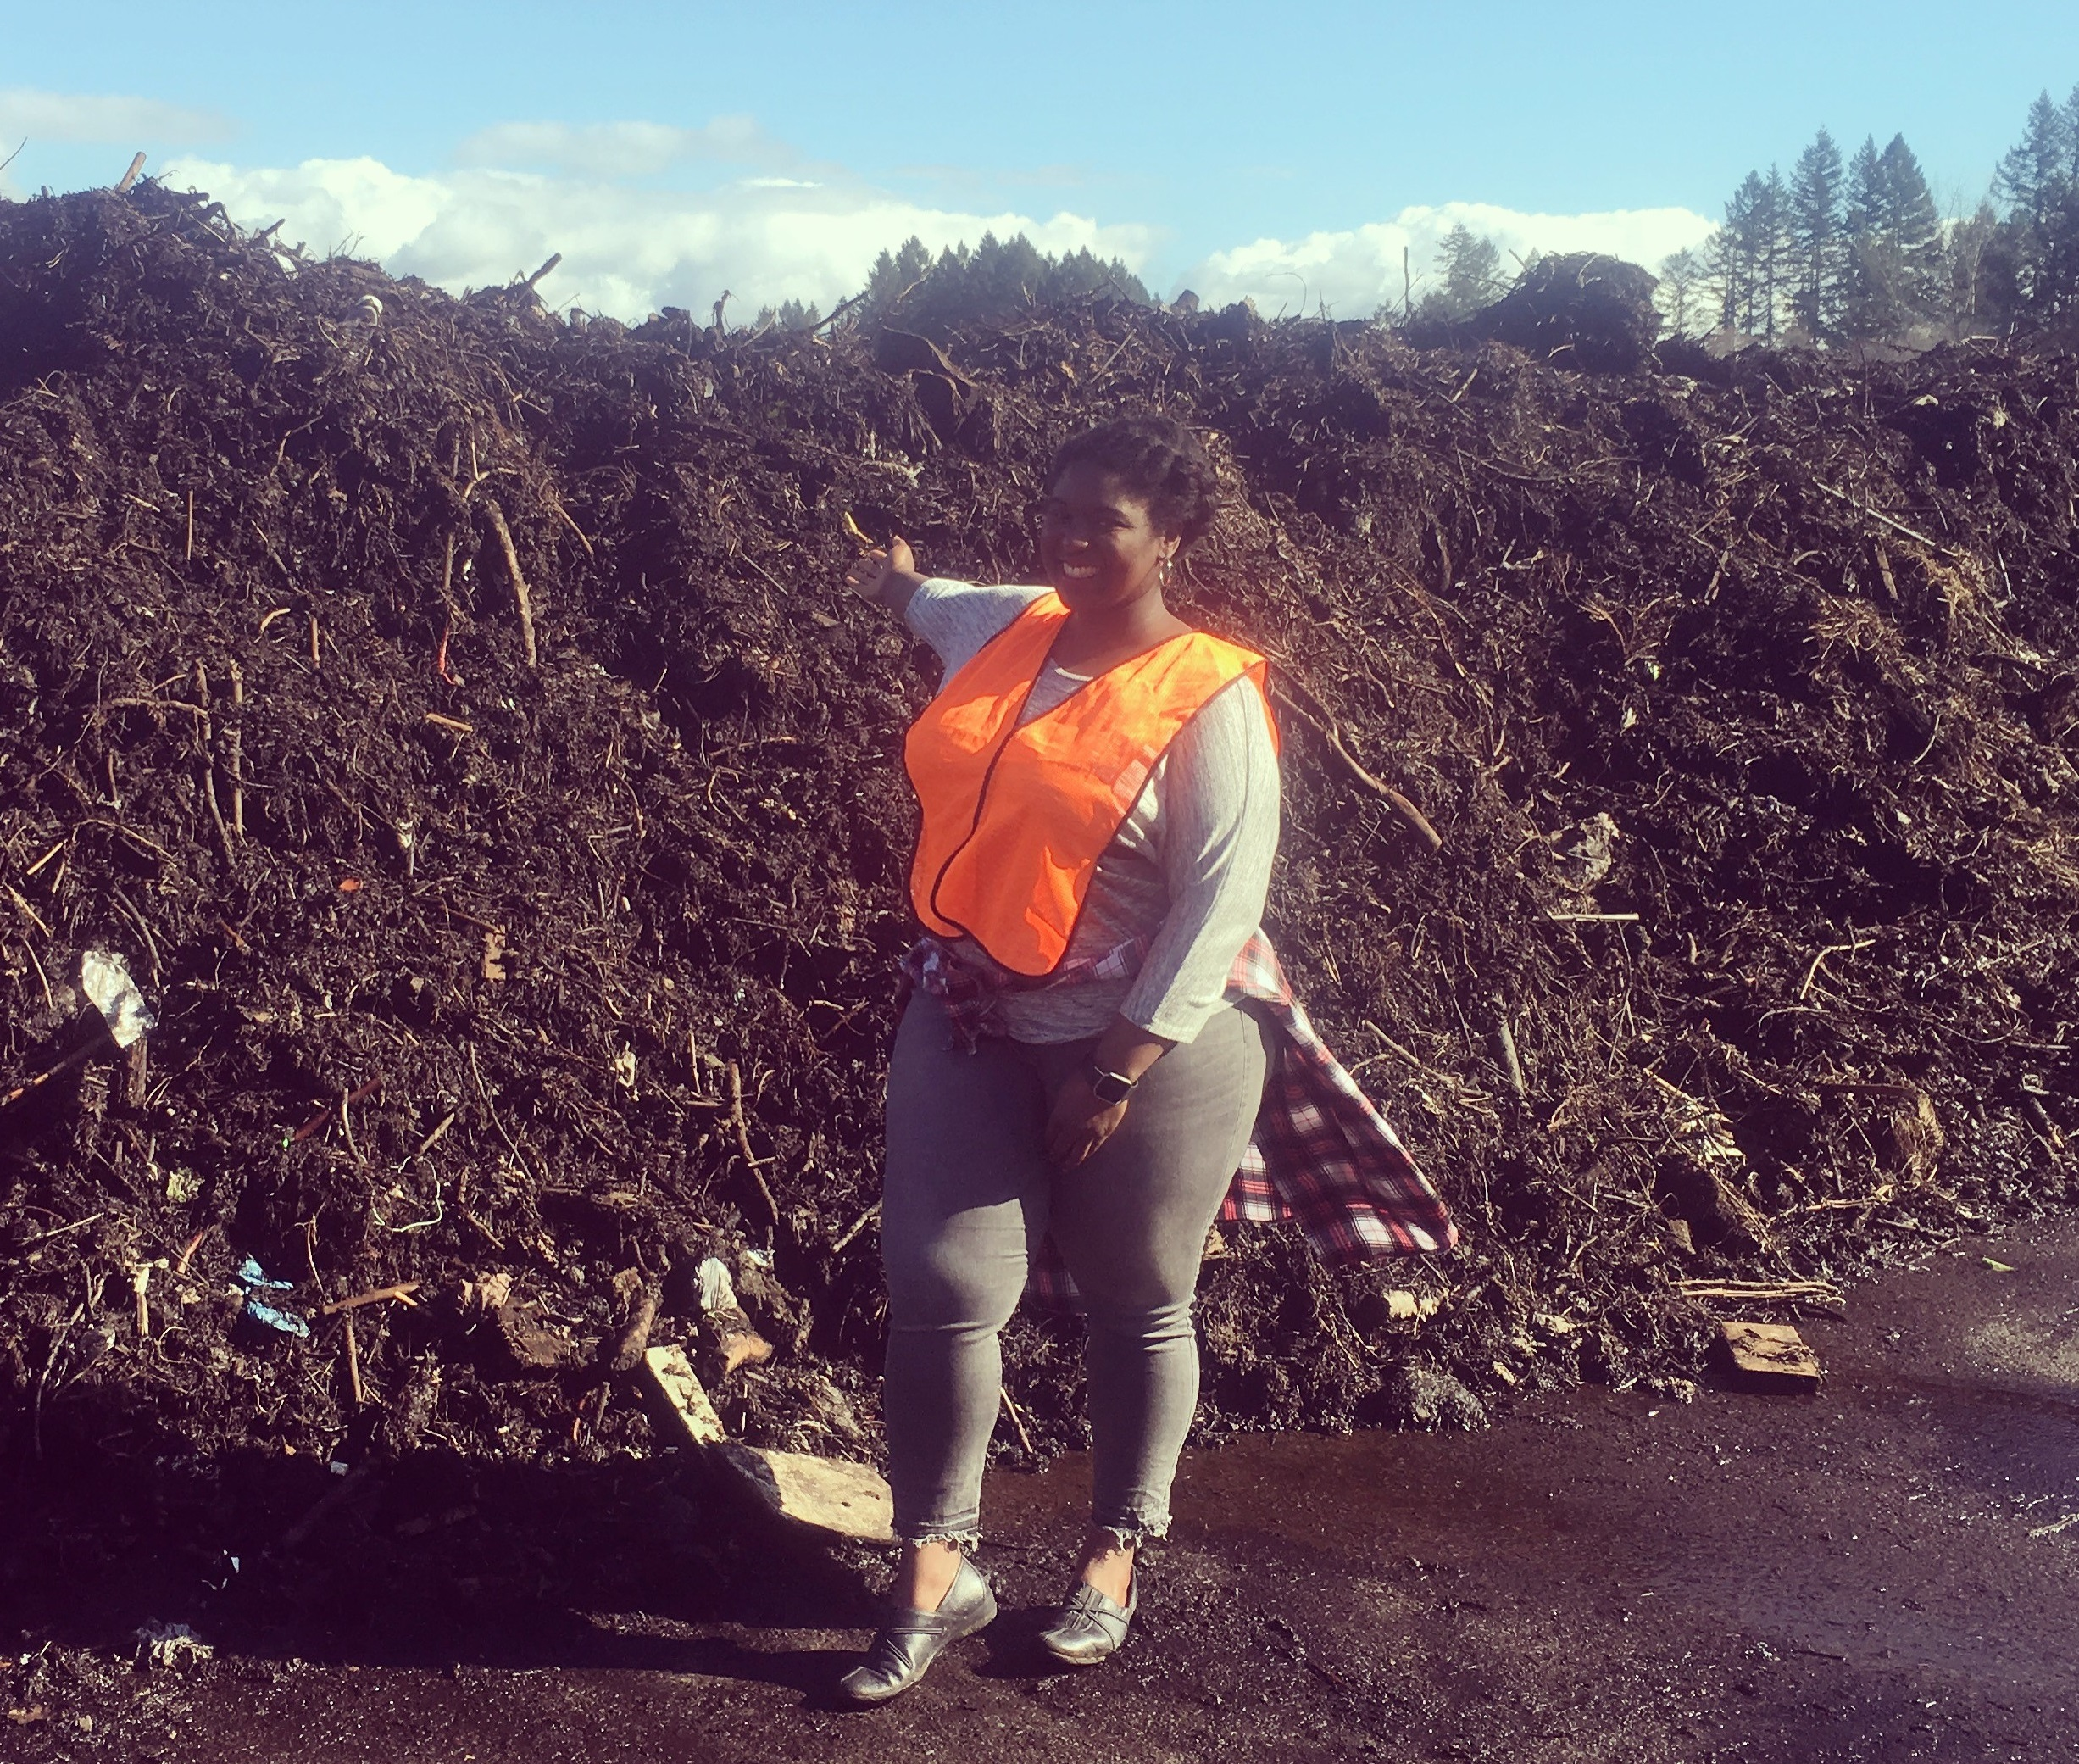 Janine shows her enthusiams for compost at Nature's Needs Compost facility